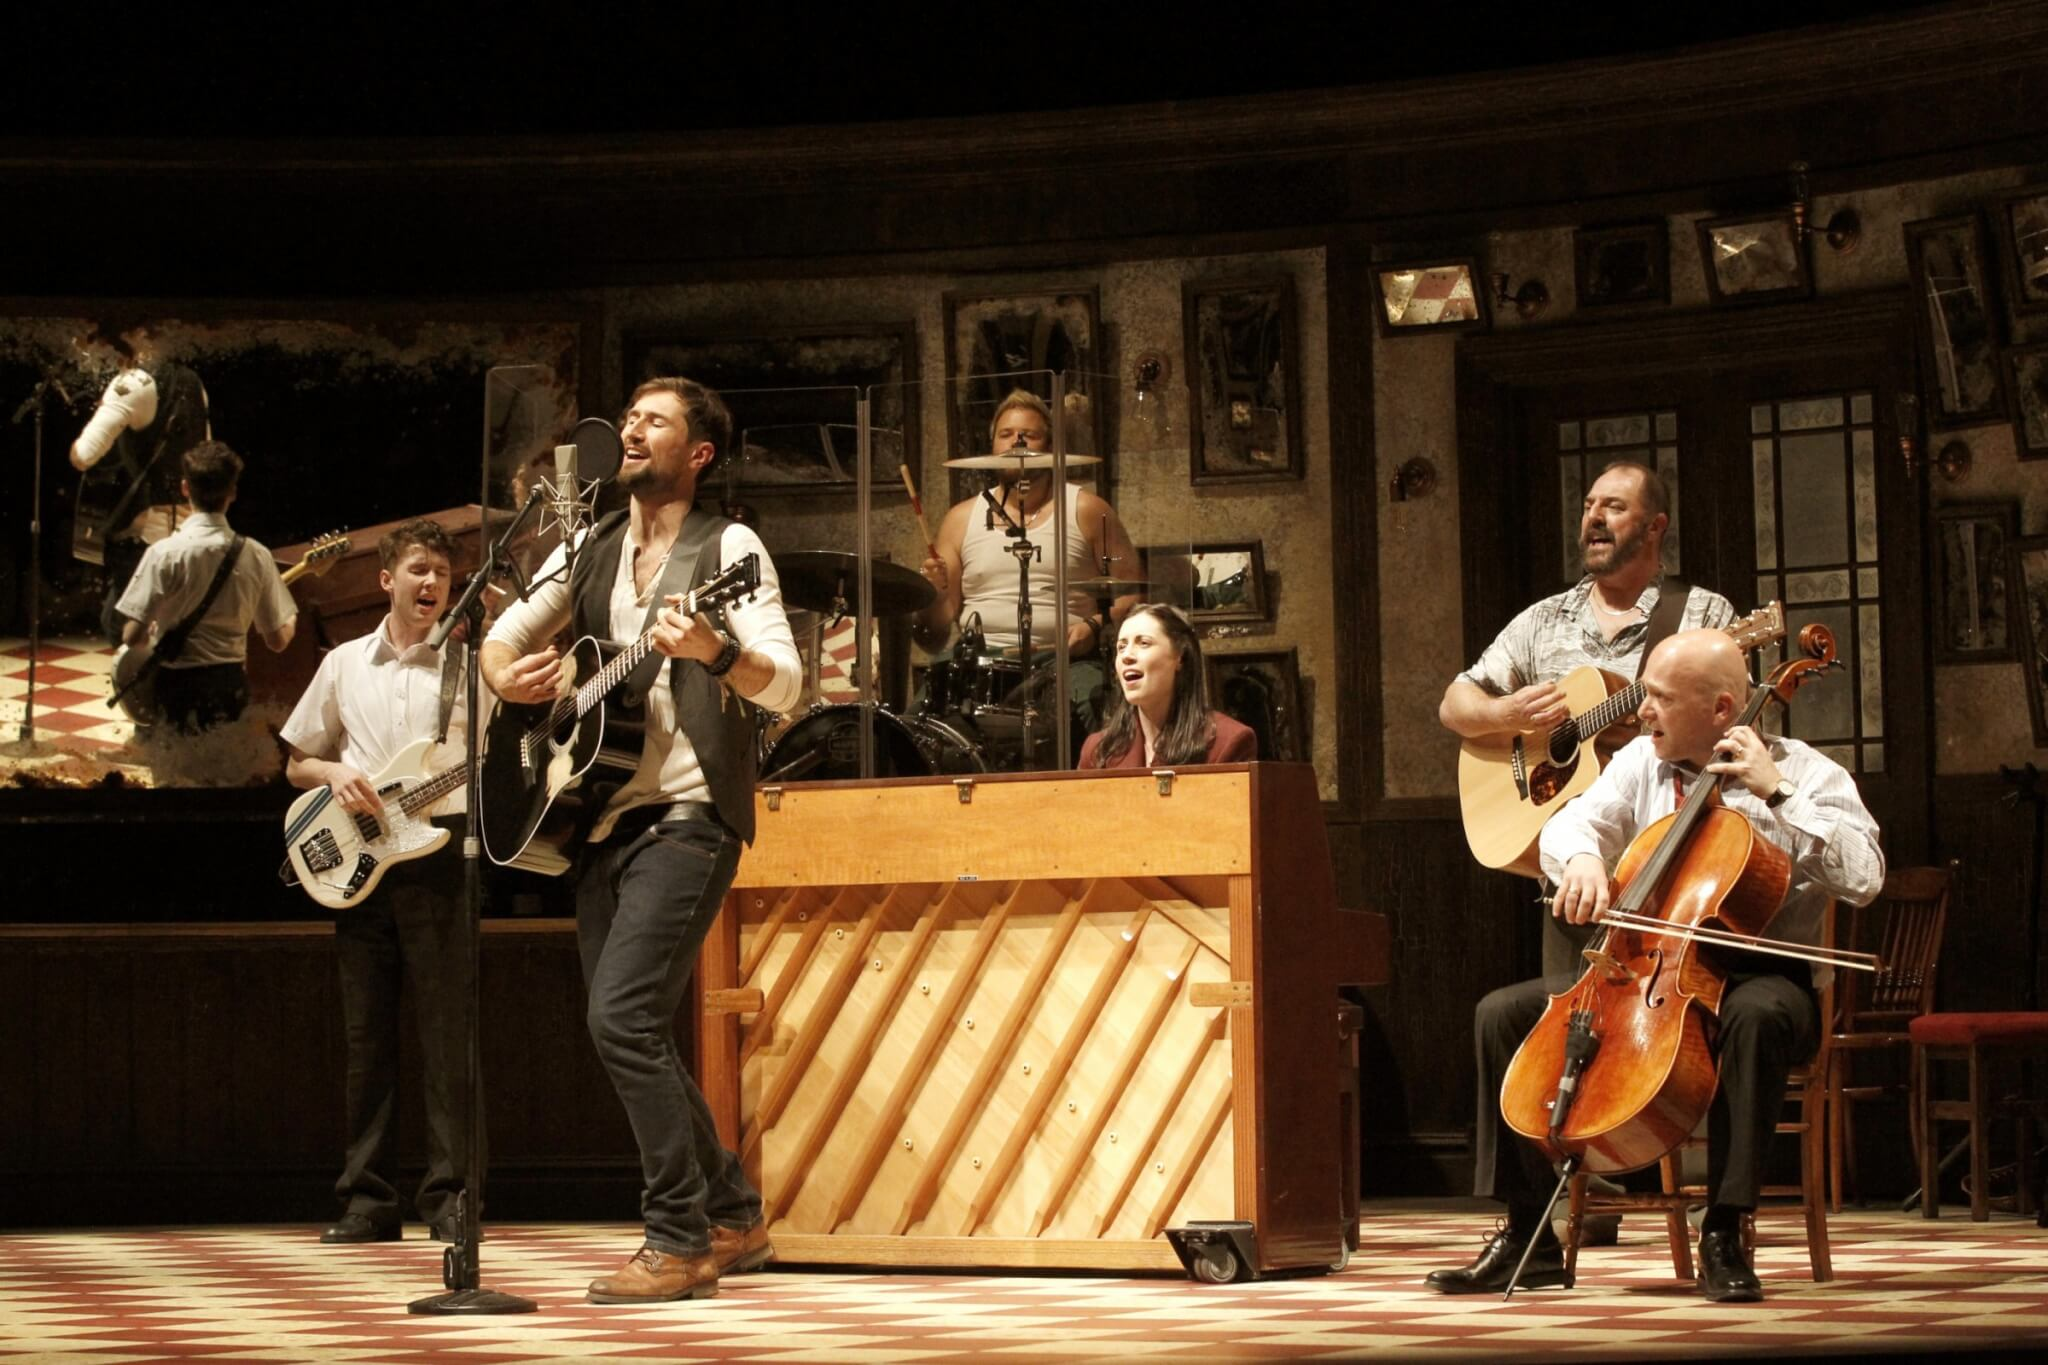 Cast of Once playing instruments